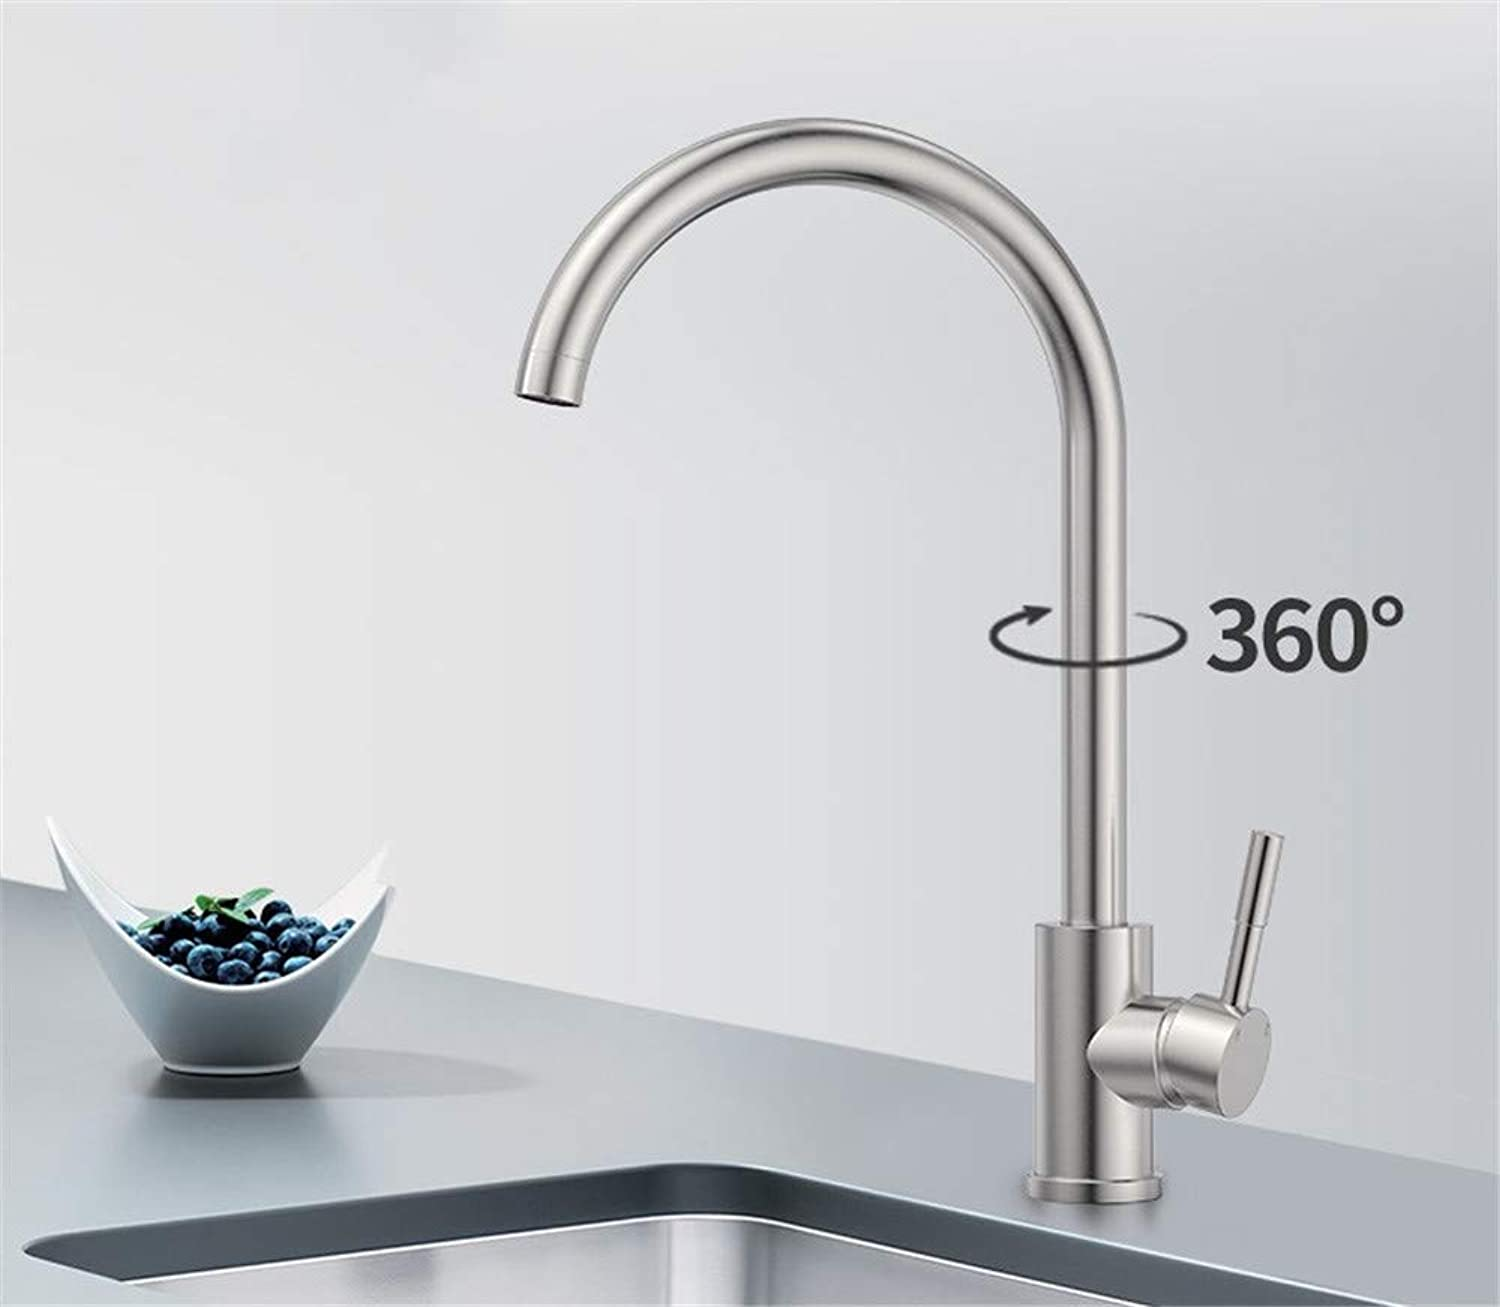 Home Kitchen Faucet hot and Cold redary Sink universally 304 Stainless Steel Sink Splash Faucet,A